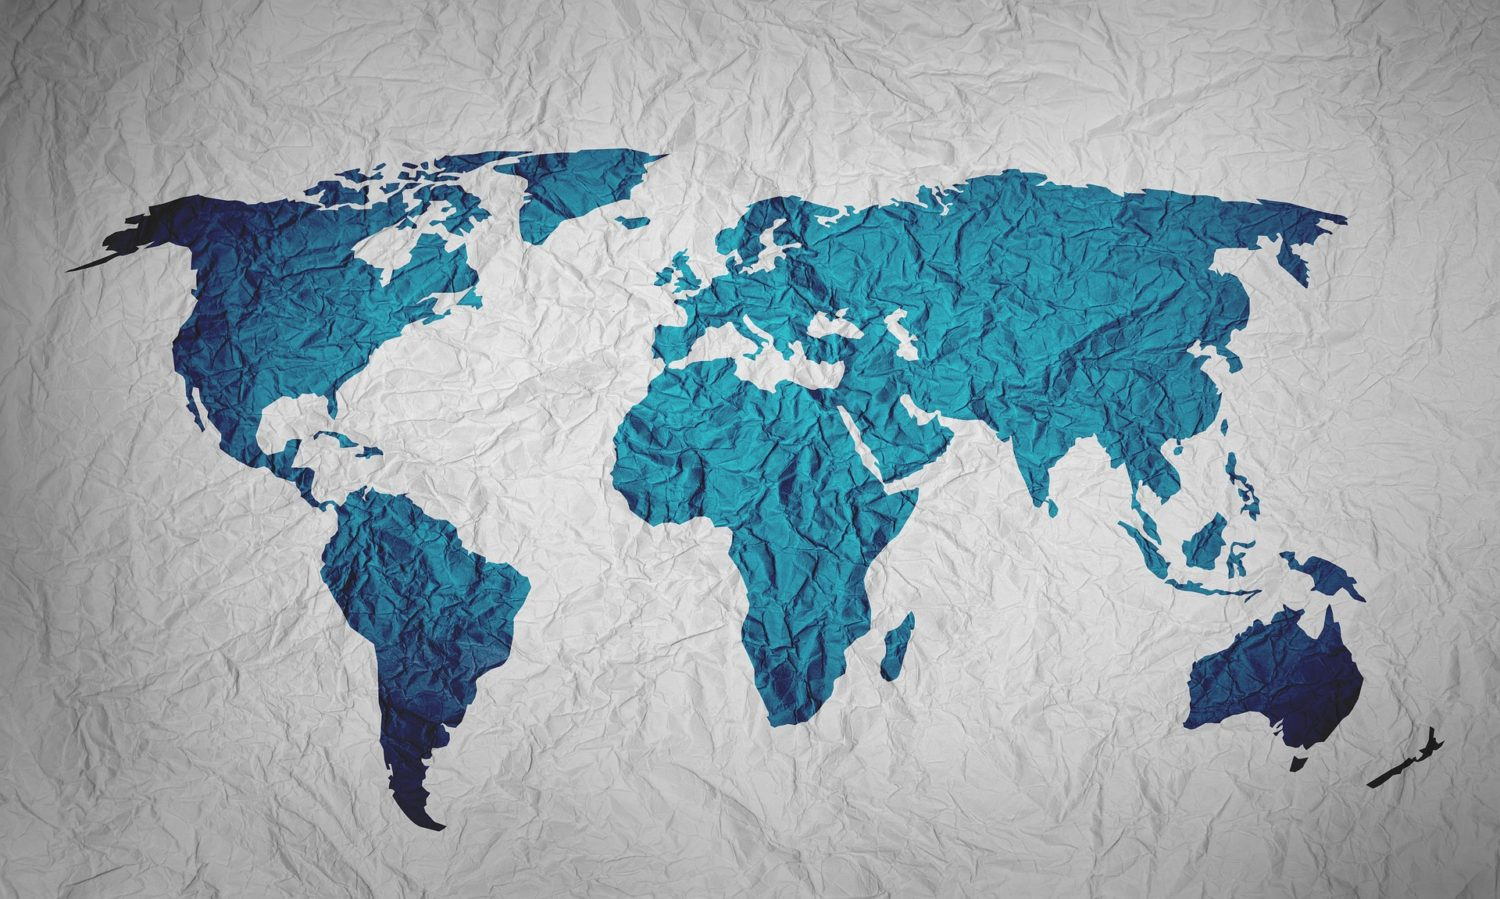 White crinkled paper with the world's continents drawn in turquoise blue ink